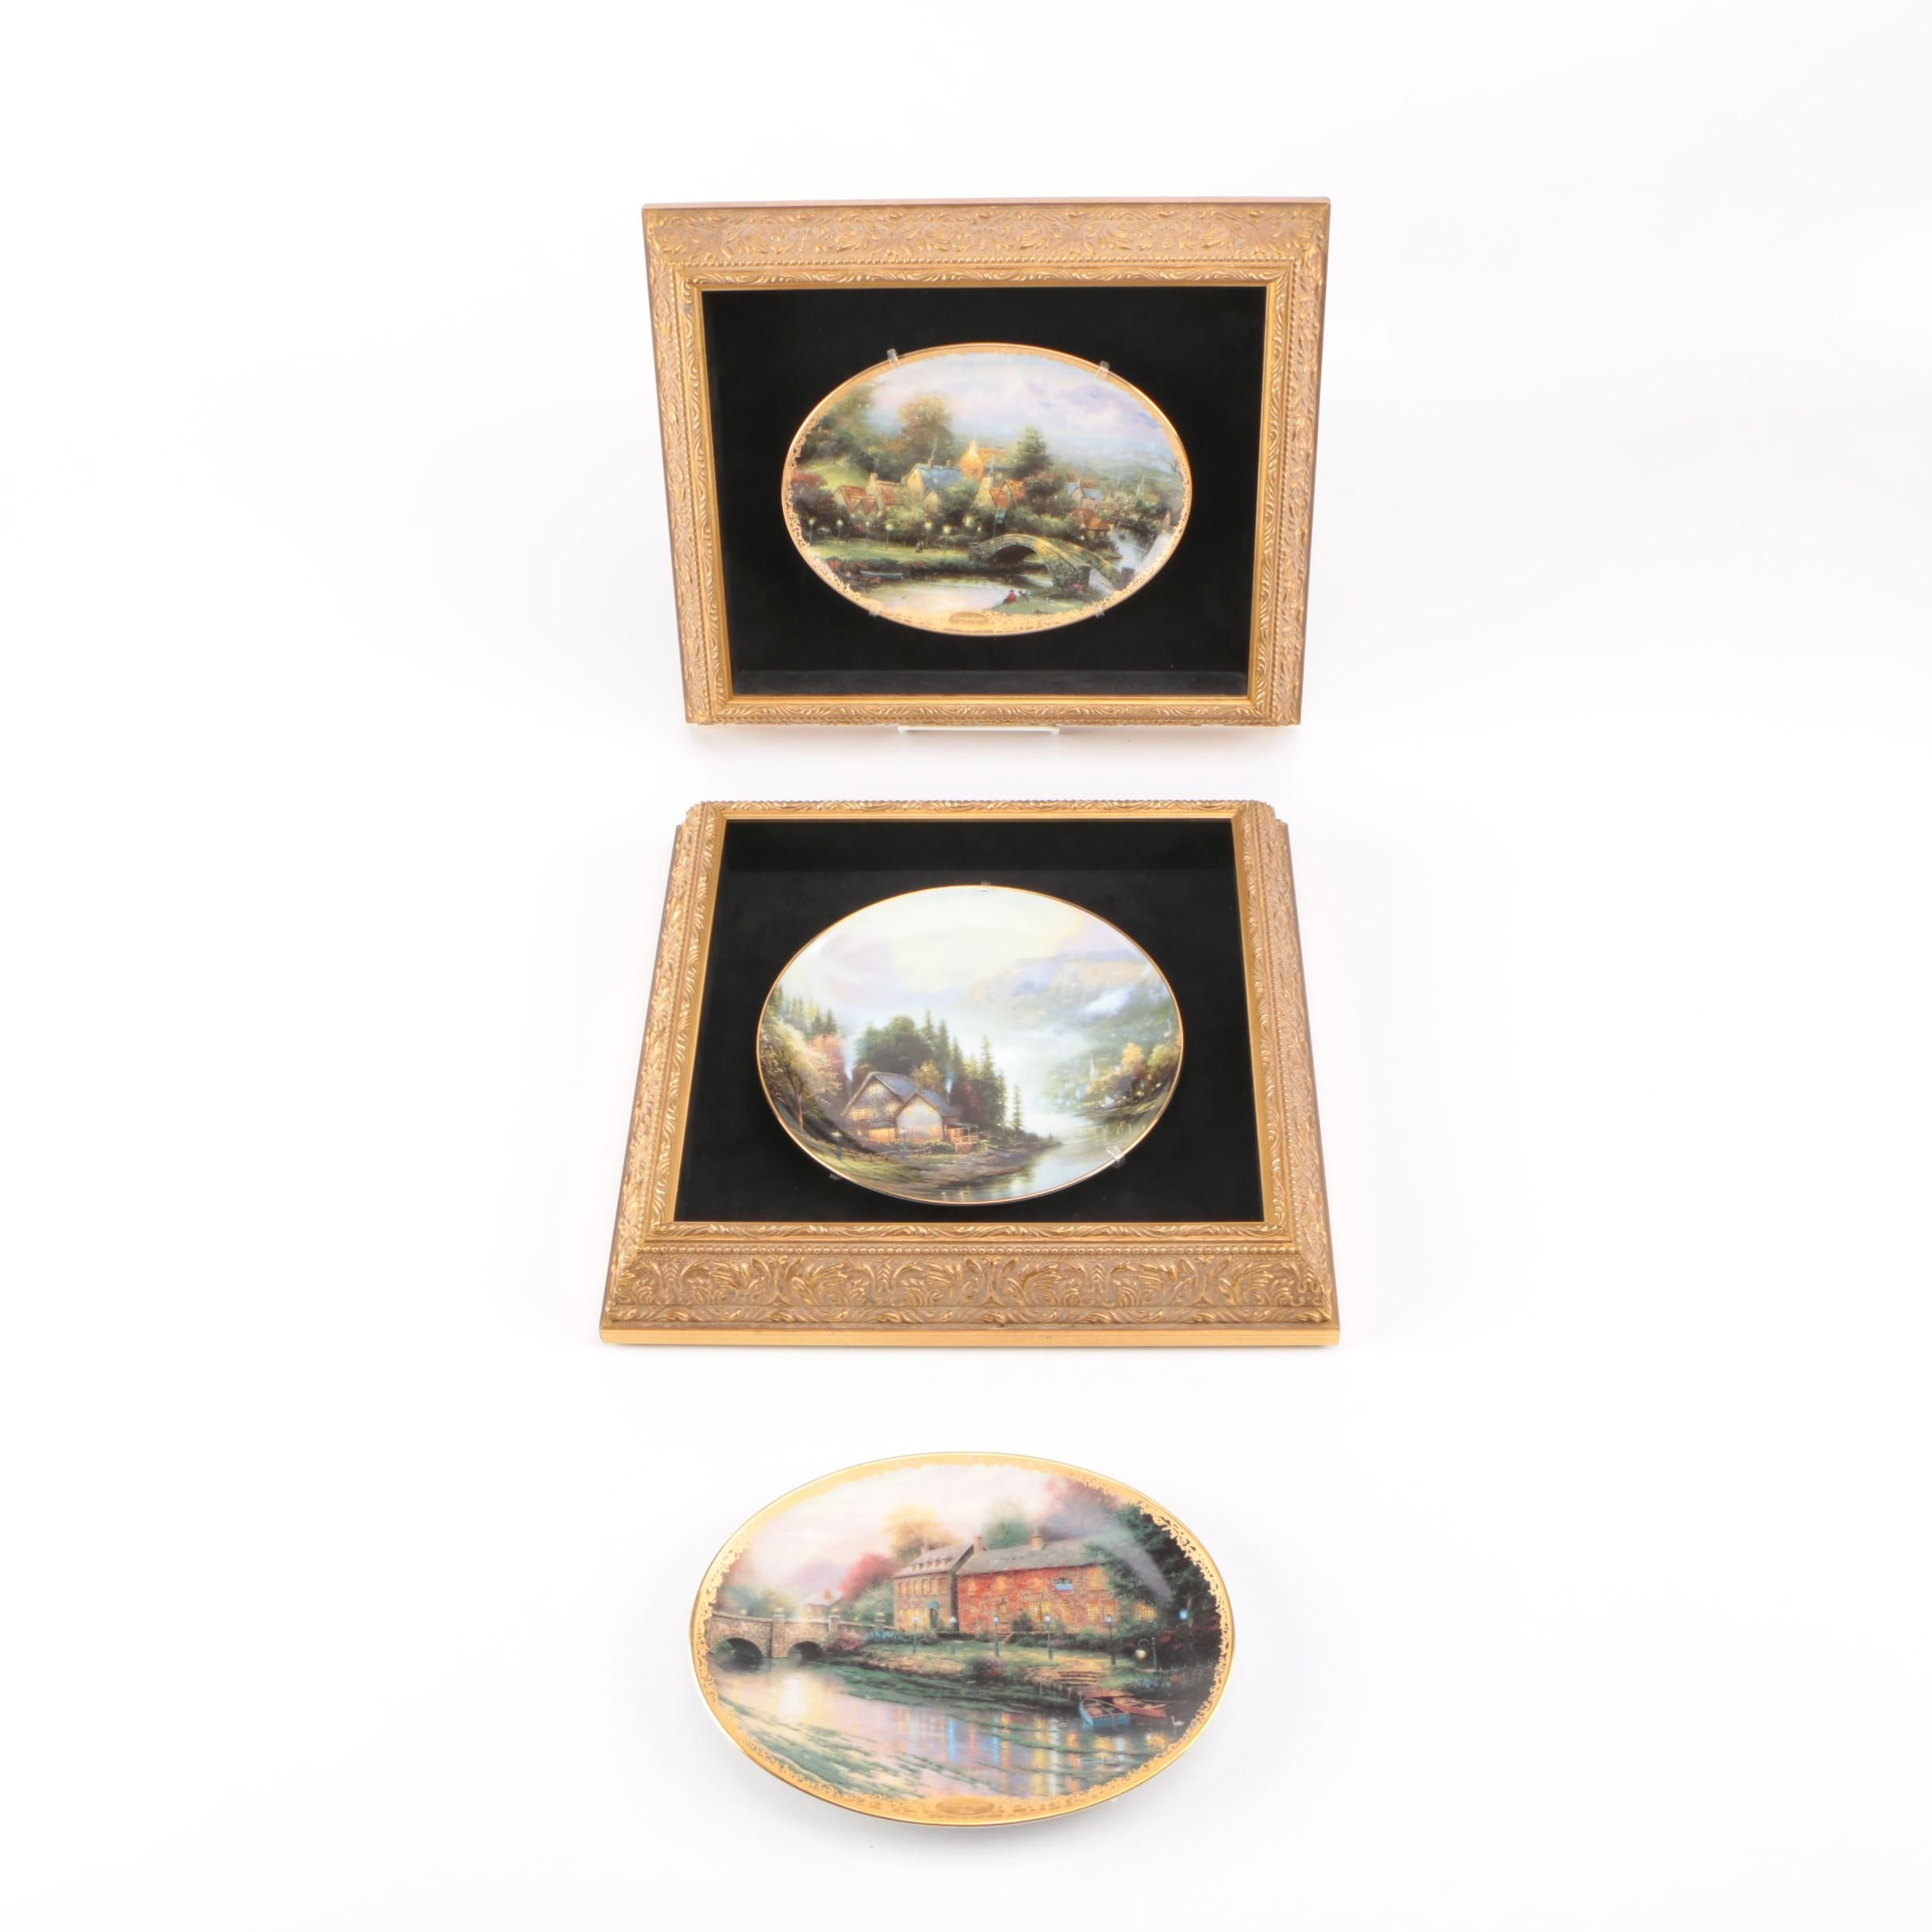 Thomas Kinkade Decorative Porcelain Plates